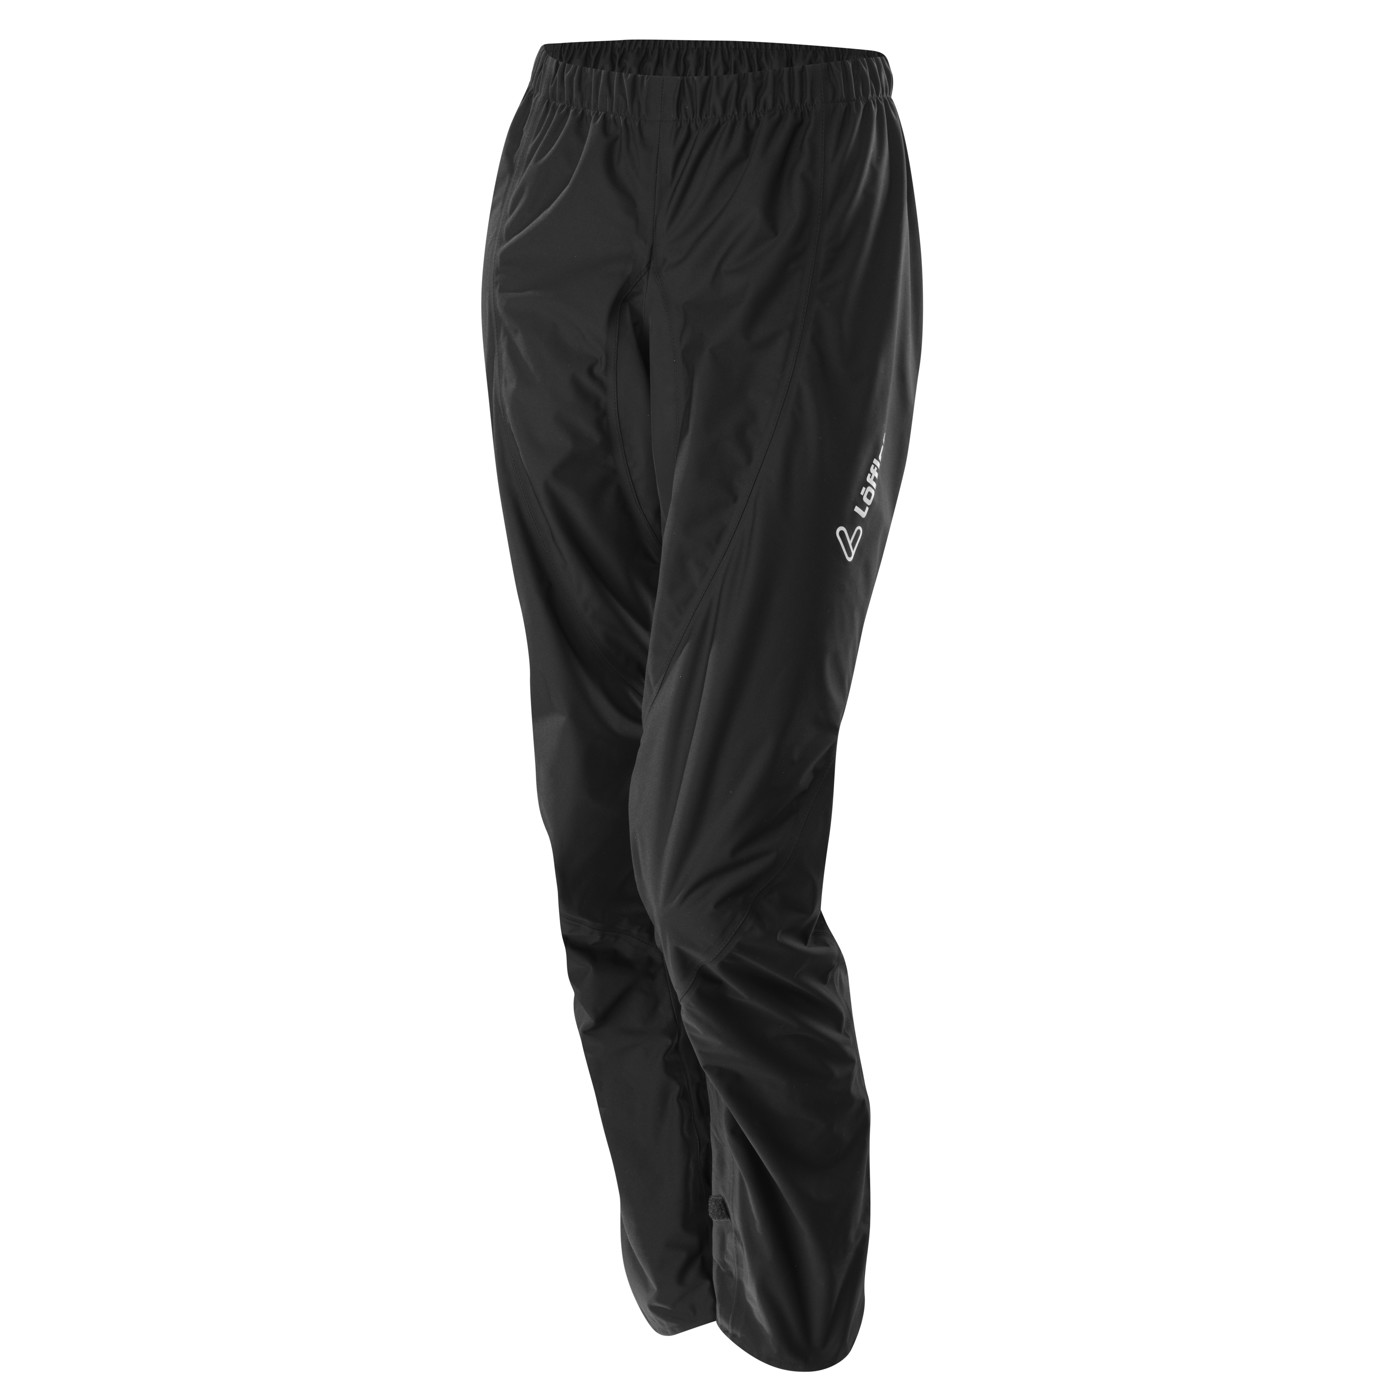 LÖFFLER W BIKE OVERPANTS GTX ACTIVE - Damen